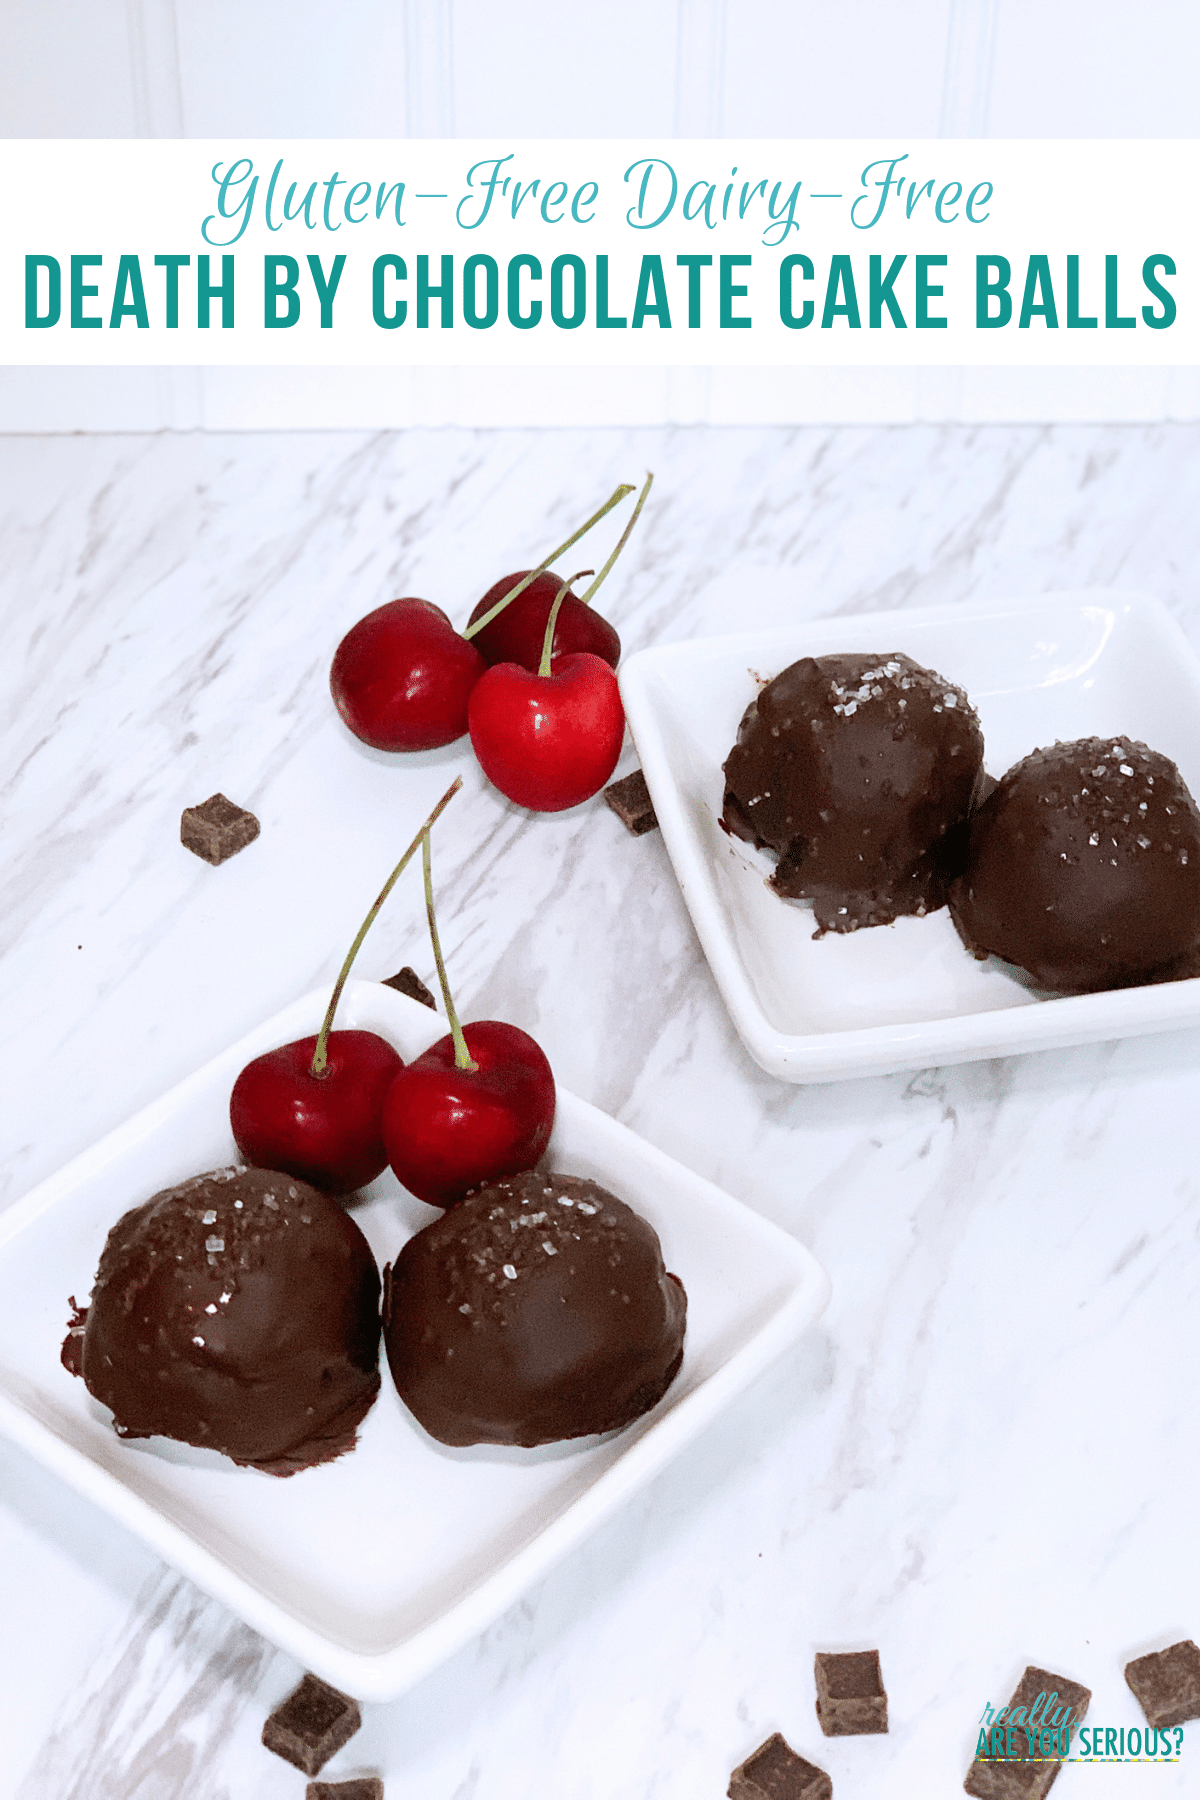 Gluten free dairy free cake pops death by chocolate